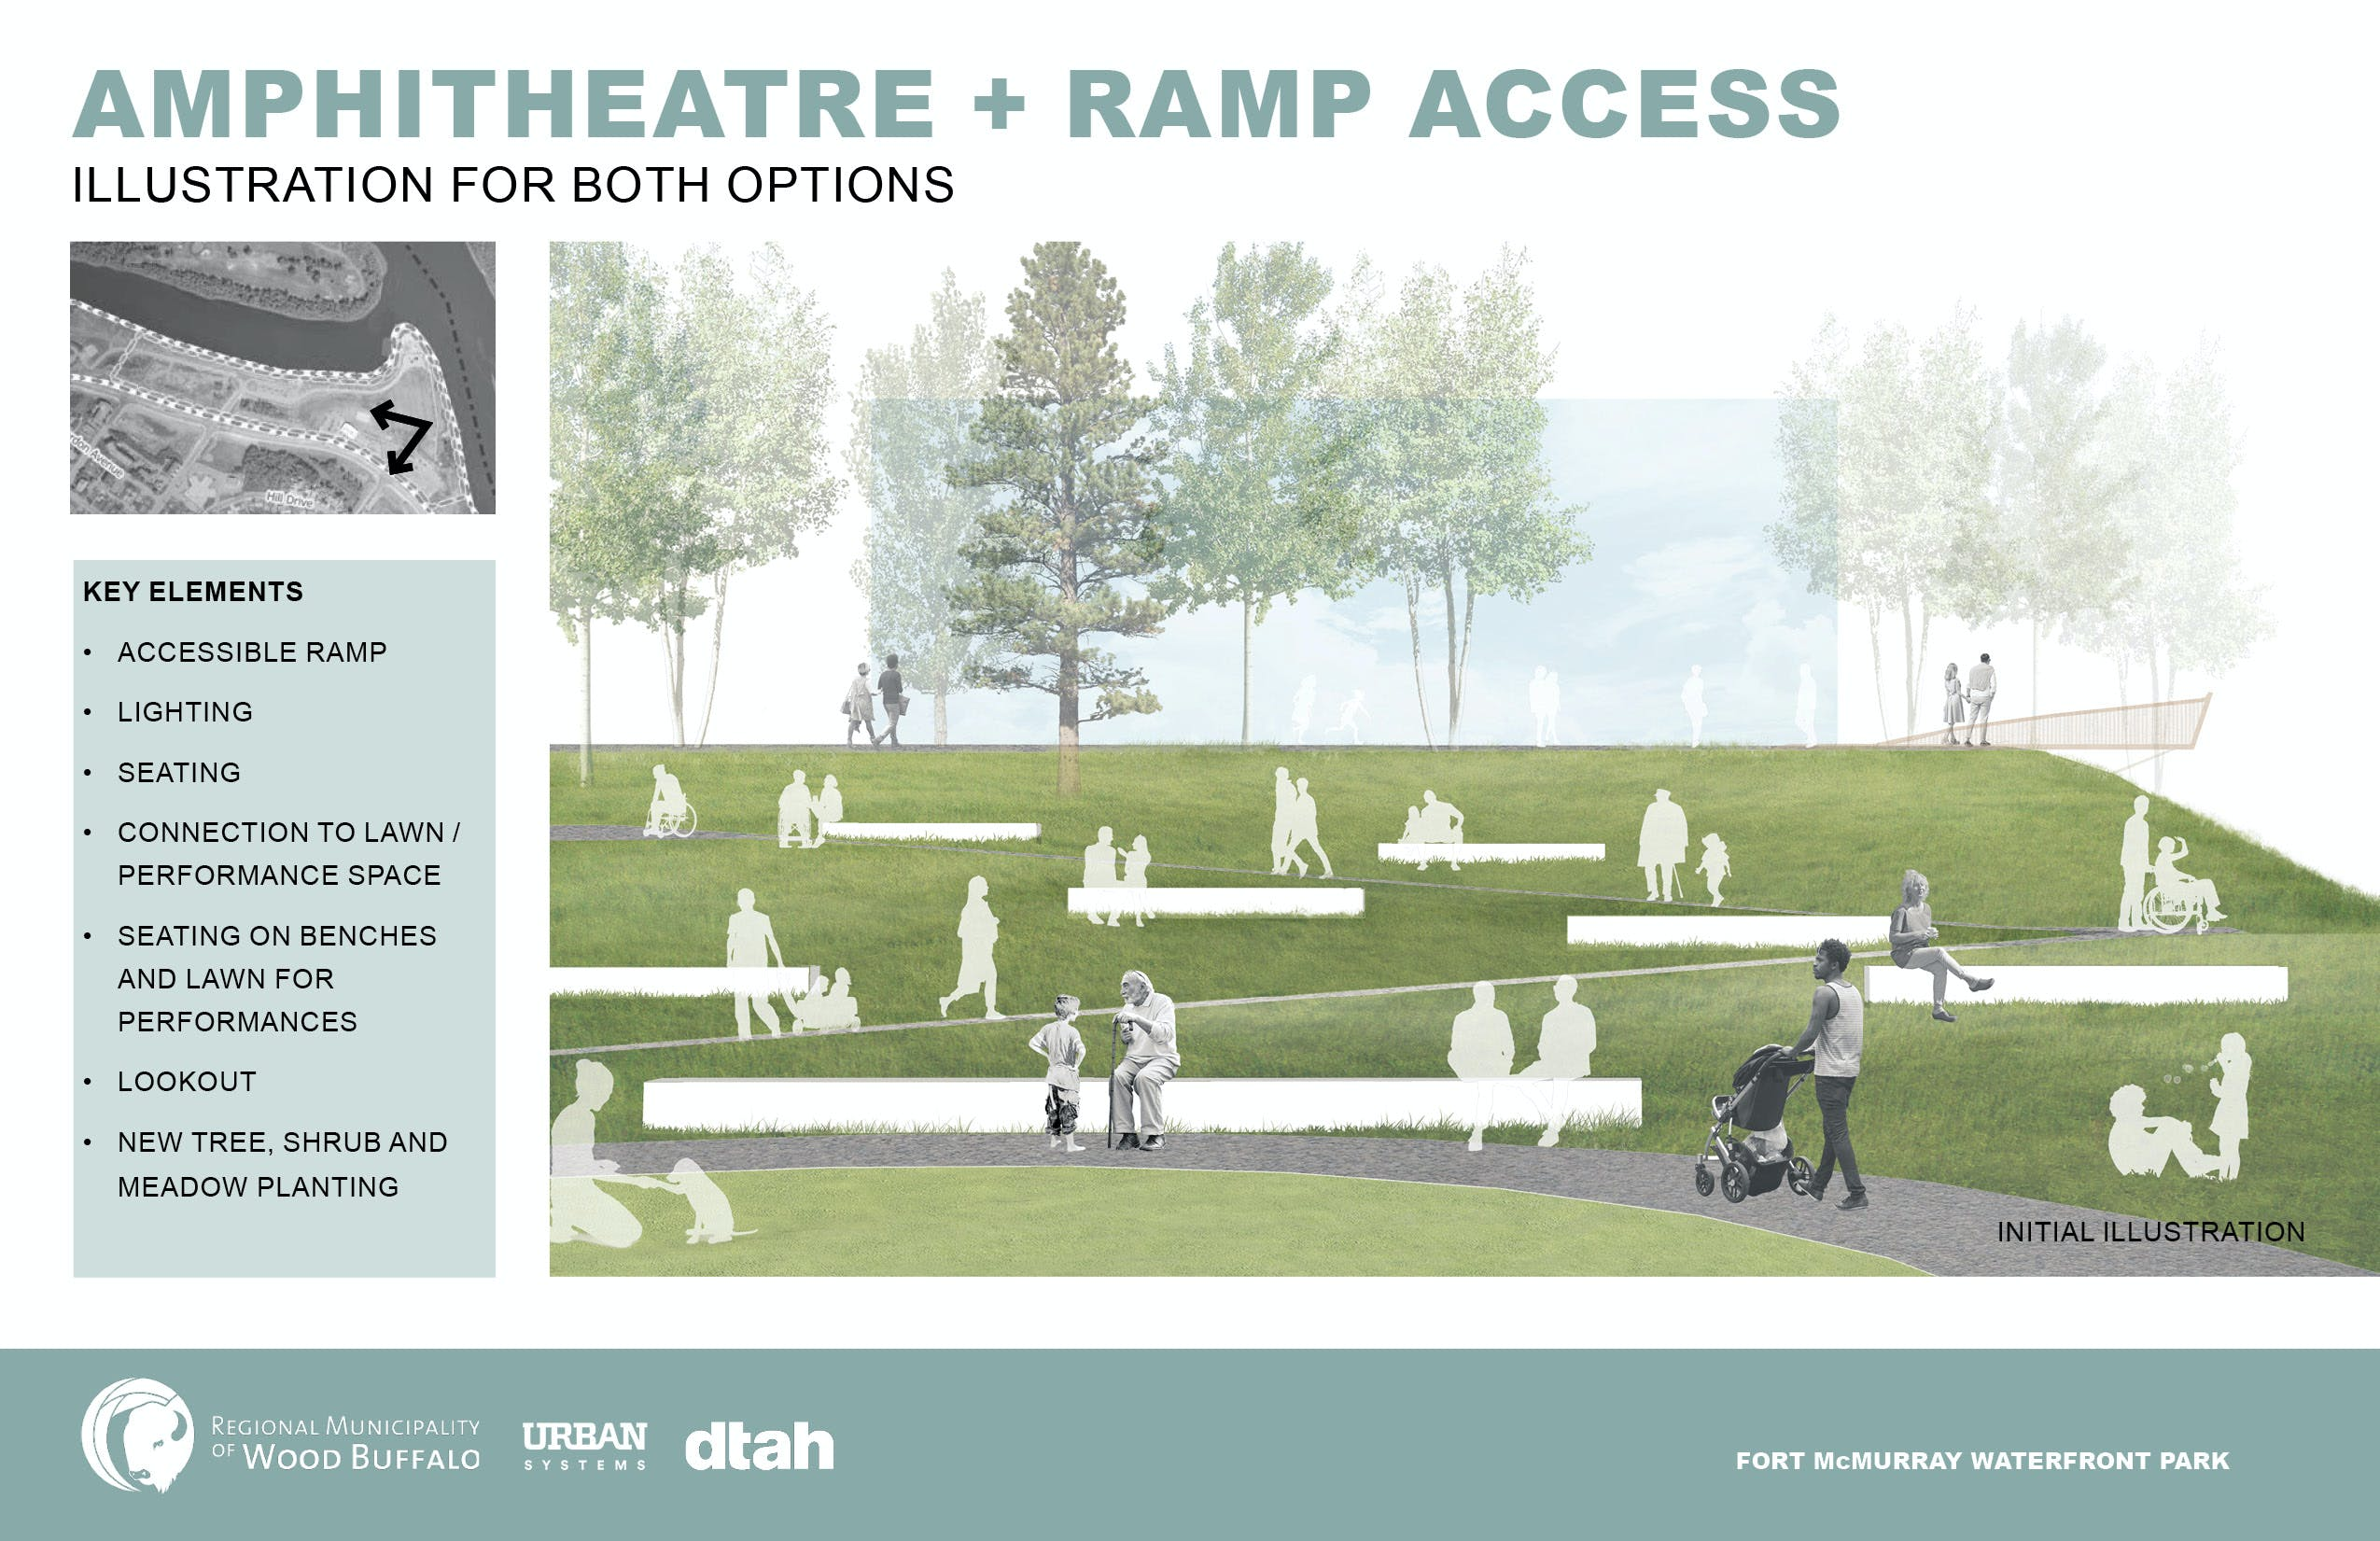 Amphitheatre + Ramp Access